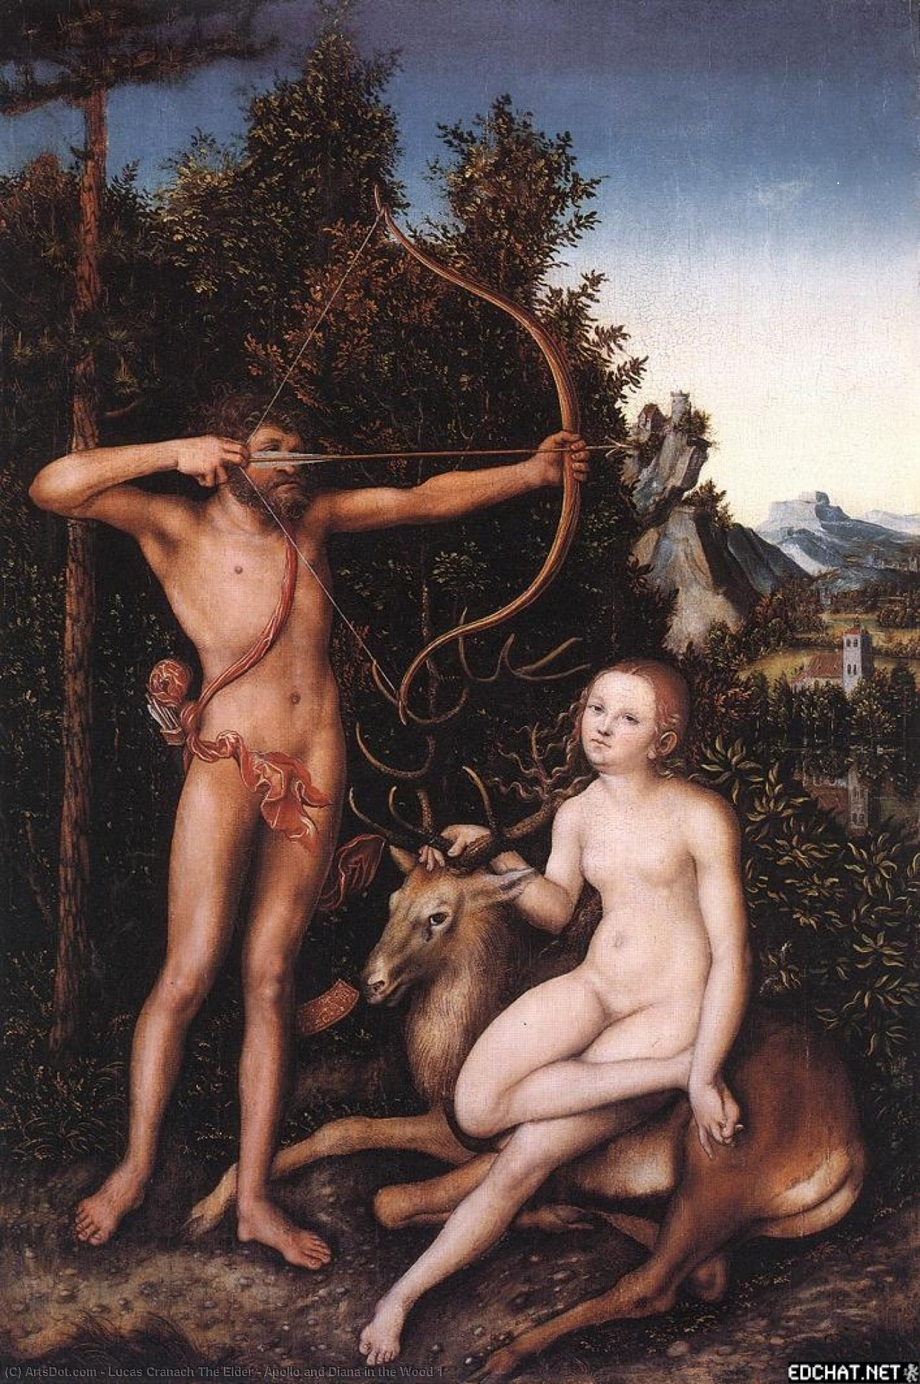 Lucas-cranach-the-elder-apollo-and-diana-in-the-wood-1.jpg